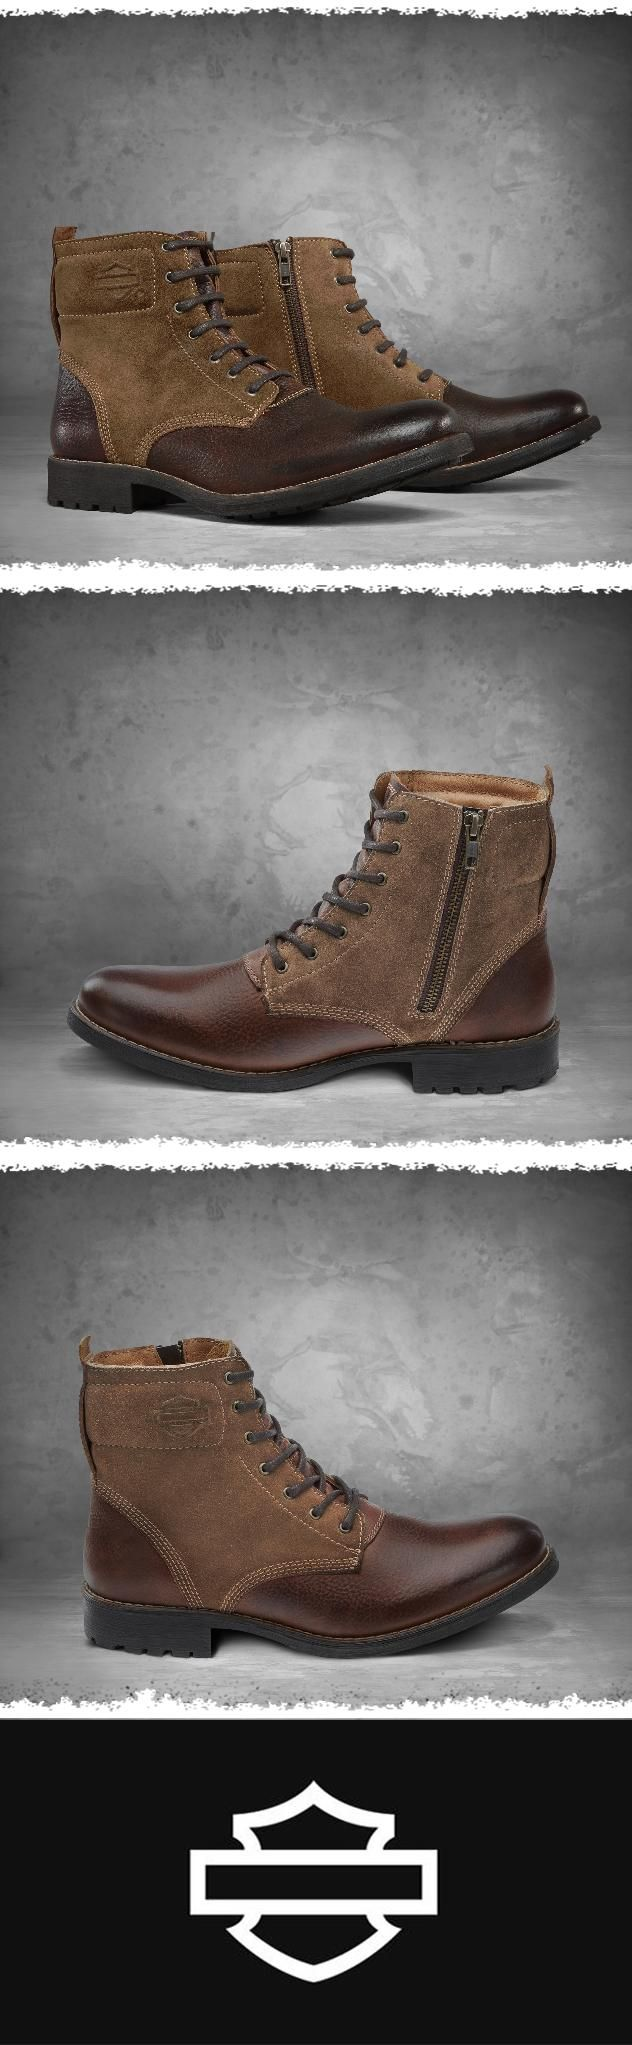 Who says you can't have stylish boots with excellent quality when you're kicking back off-the-bike?   Harley-Davidson Men's Stevenson Boots #FathersDay